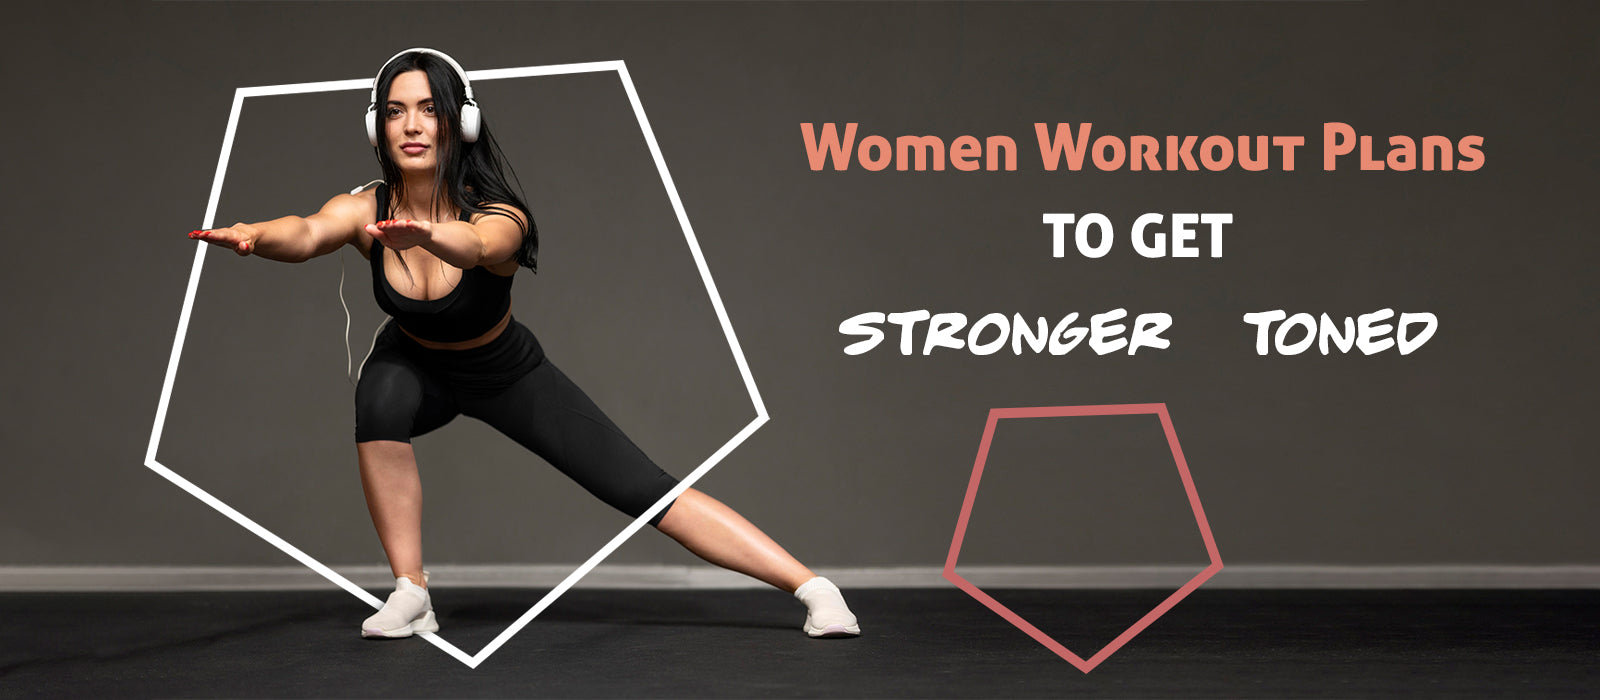 Women Workout Plans To Get Stronger & Toned